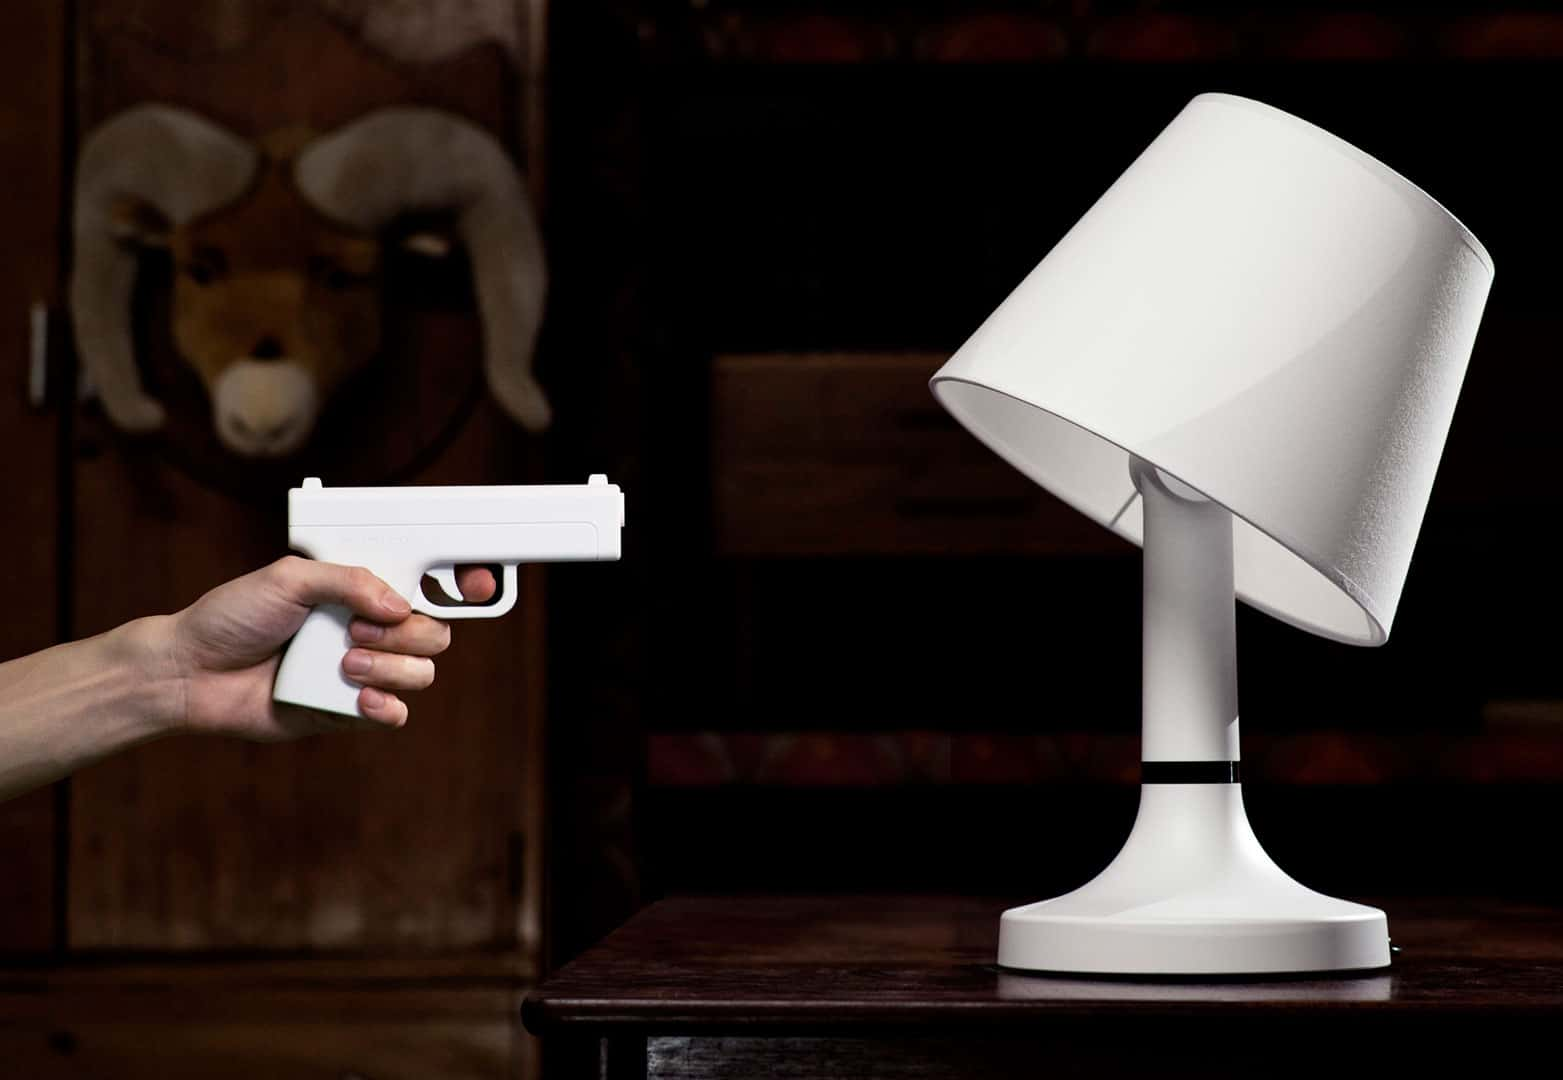 Bang! Gun Lamp by Bitplay Cool Novelty with Playful Design